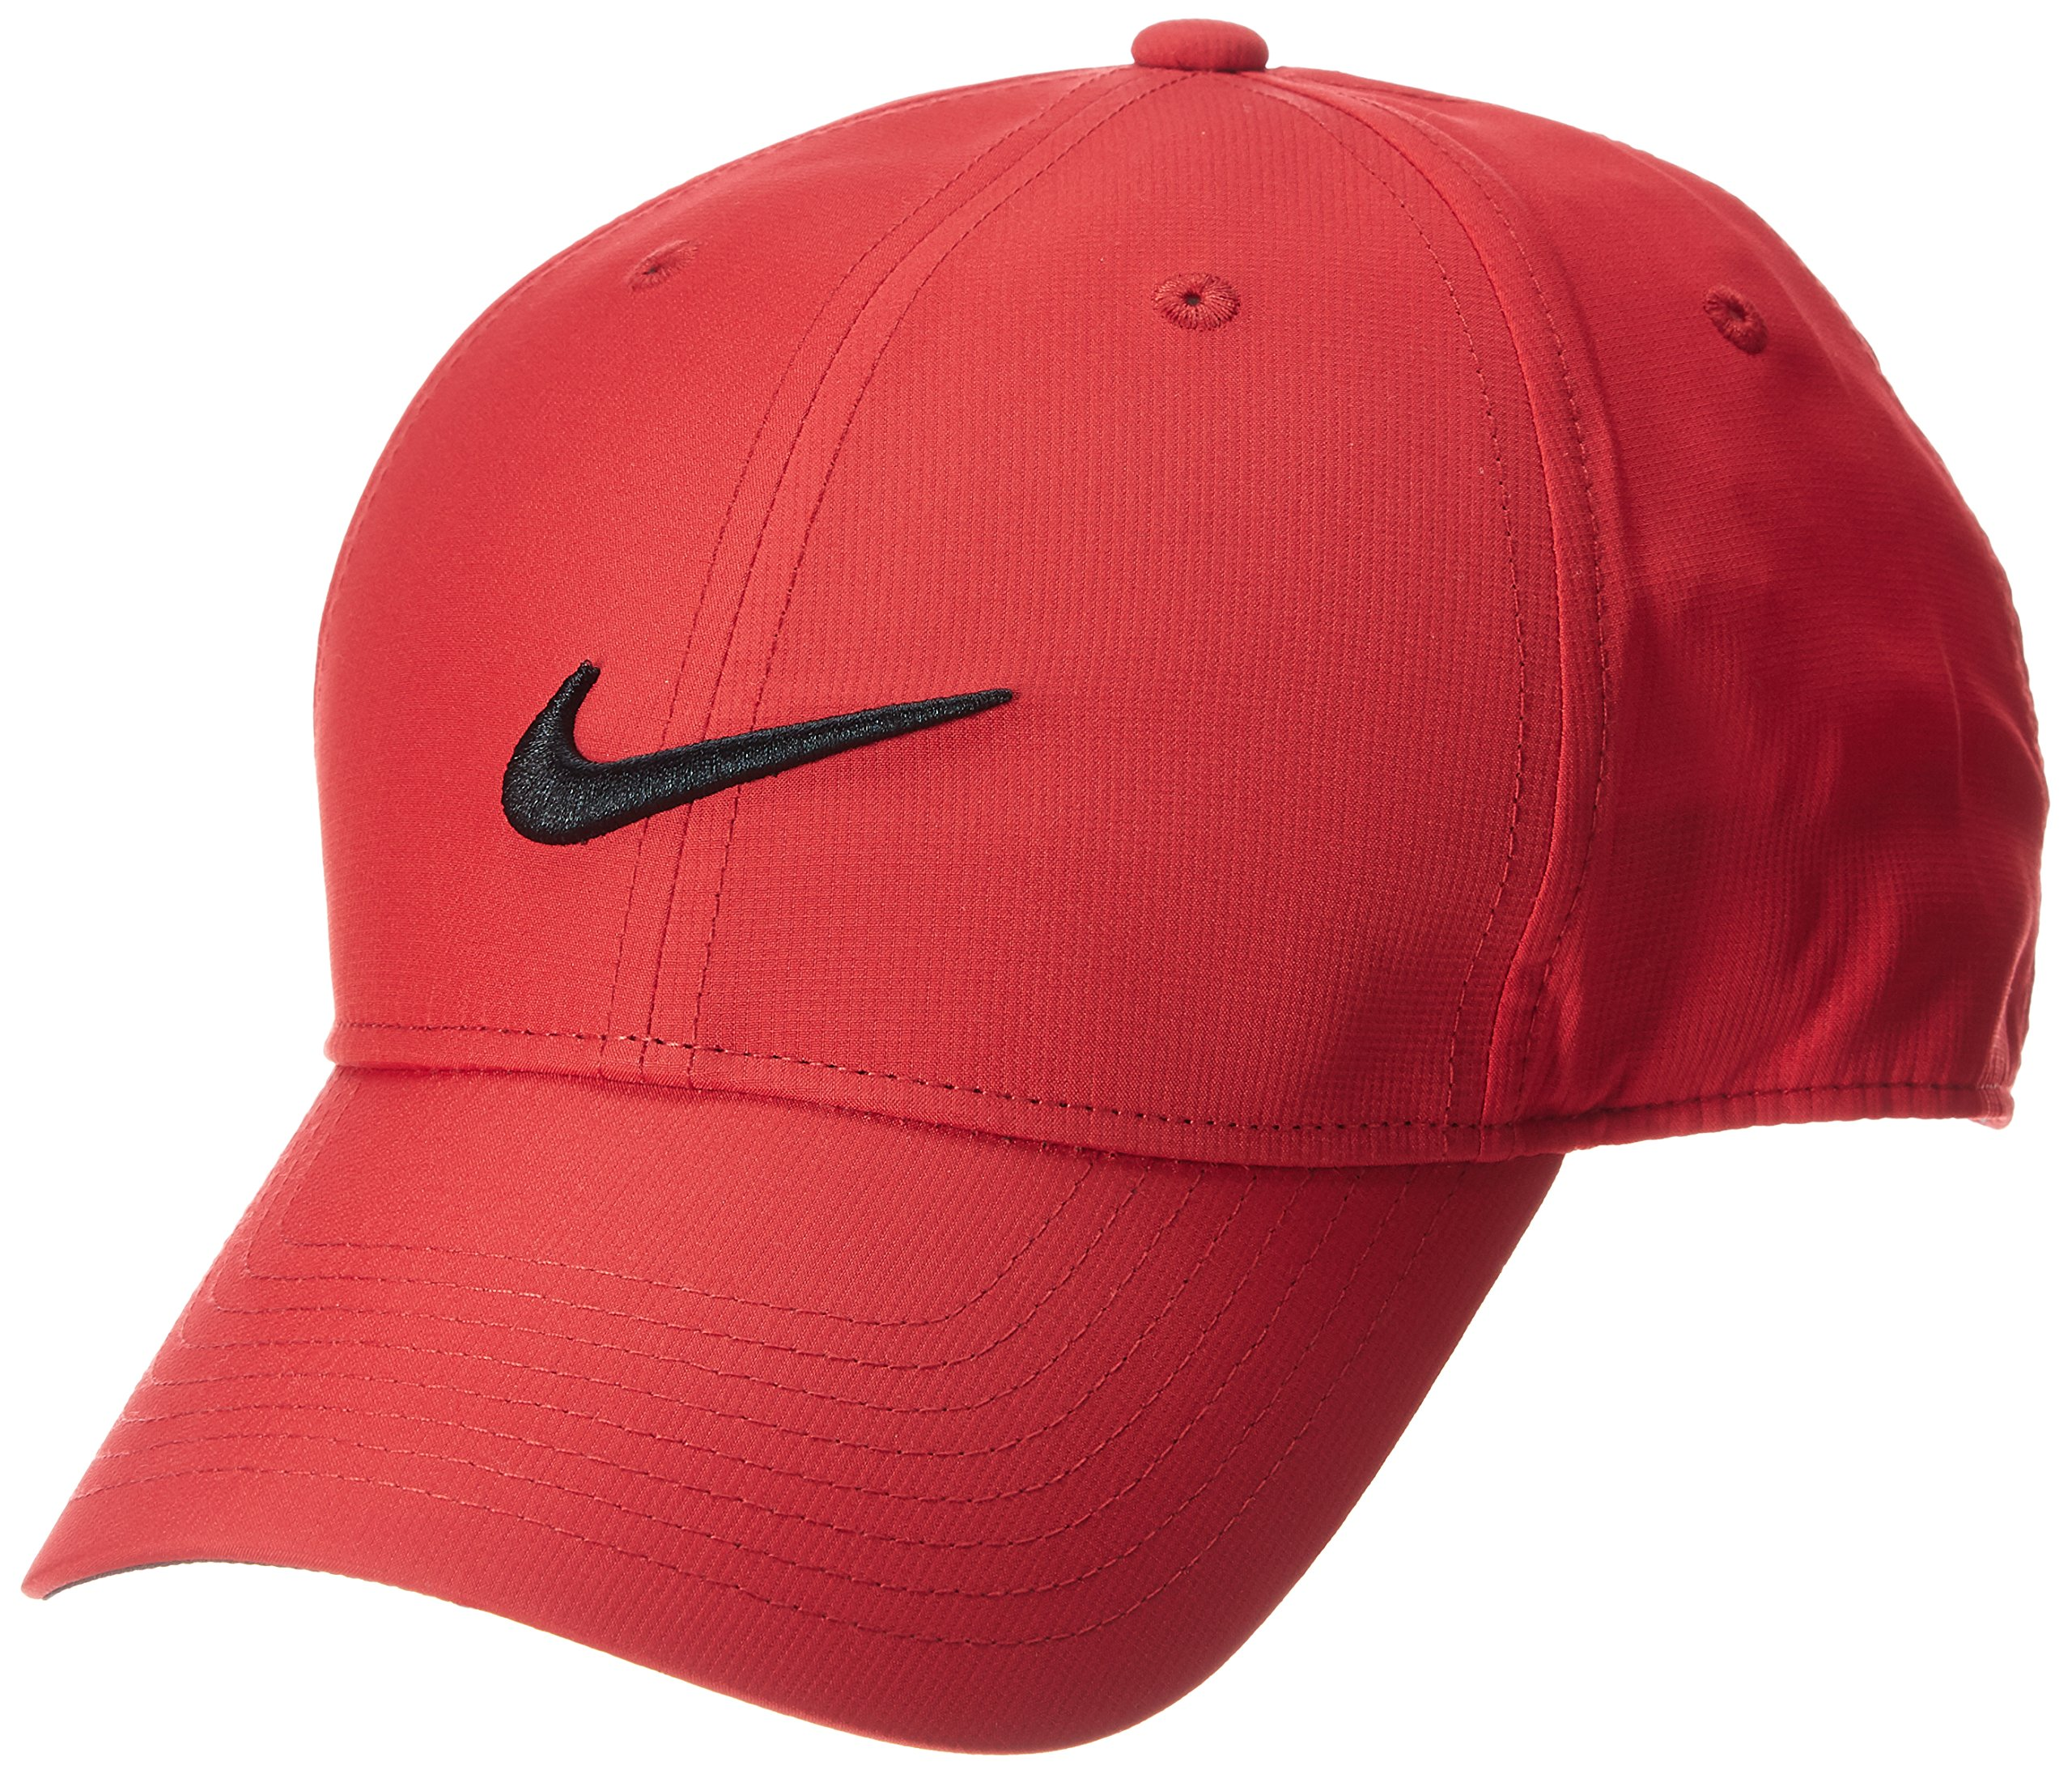 san francisco 6611d 21100 ... where to buy nike l91 cap tech hat university red anthracite black misc  57aa4 96da9